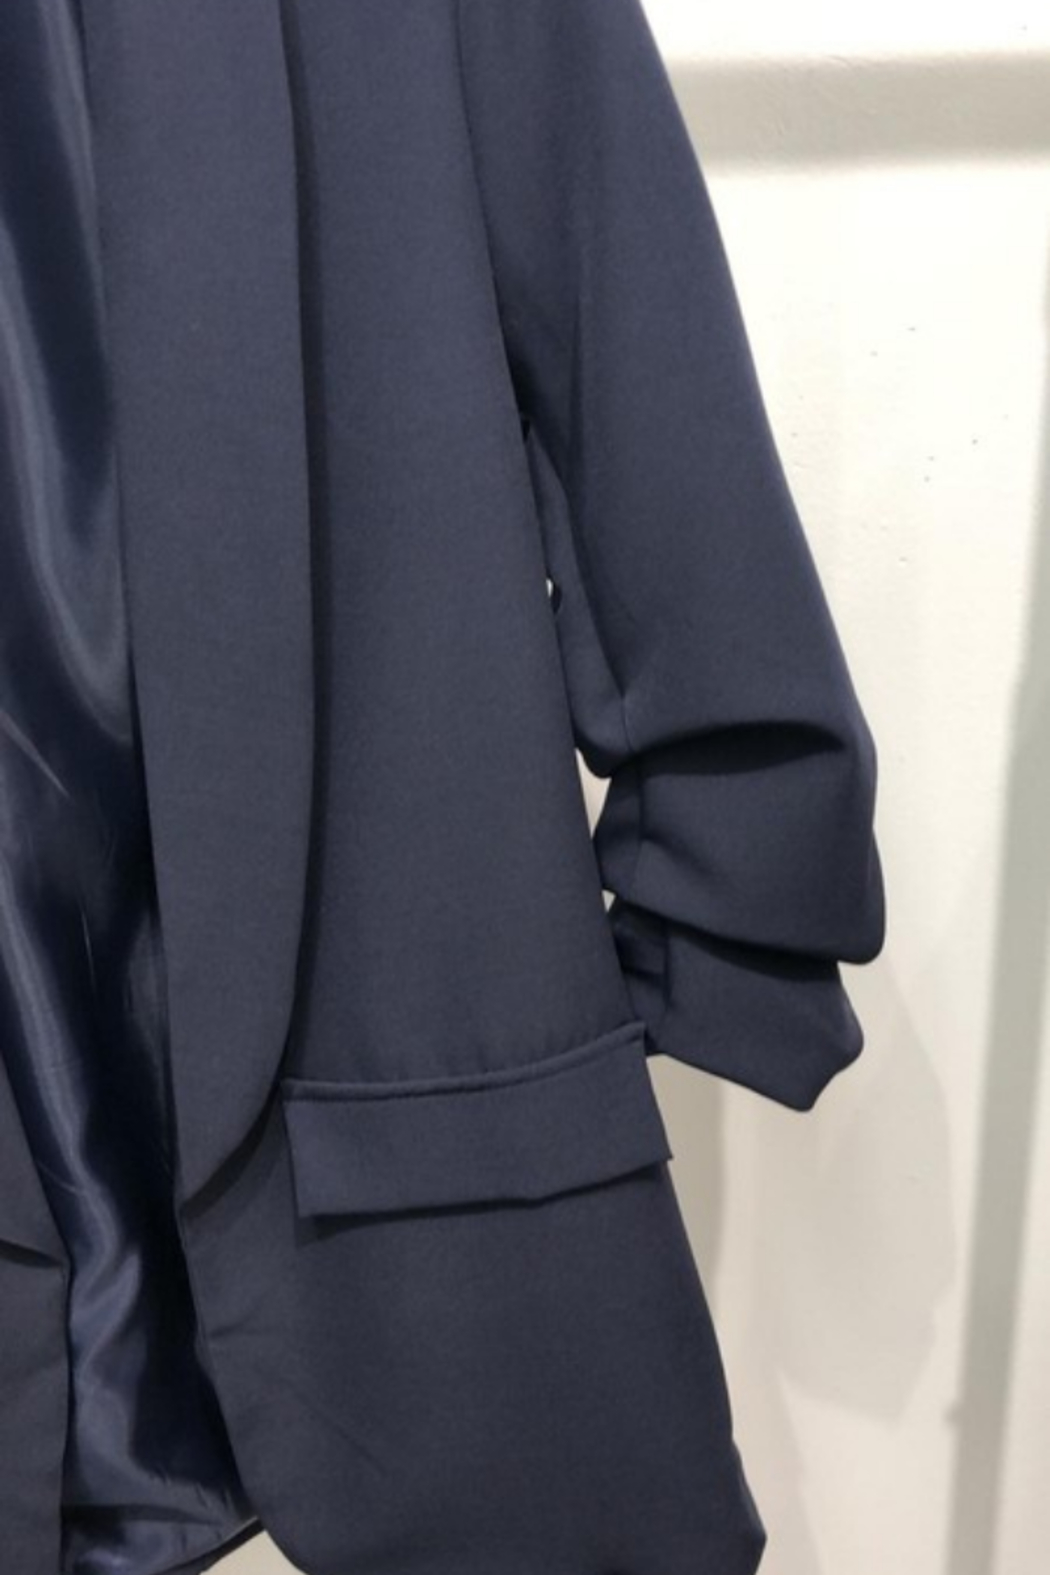 Venti6 Ruched Sleeve Blazer - Front Full Image